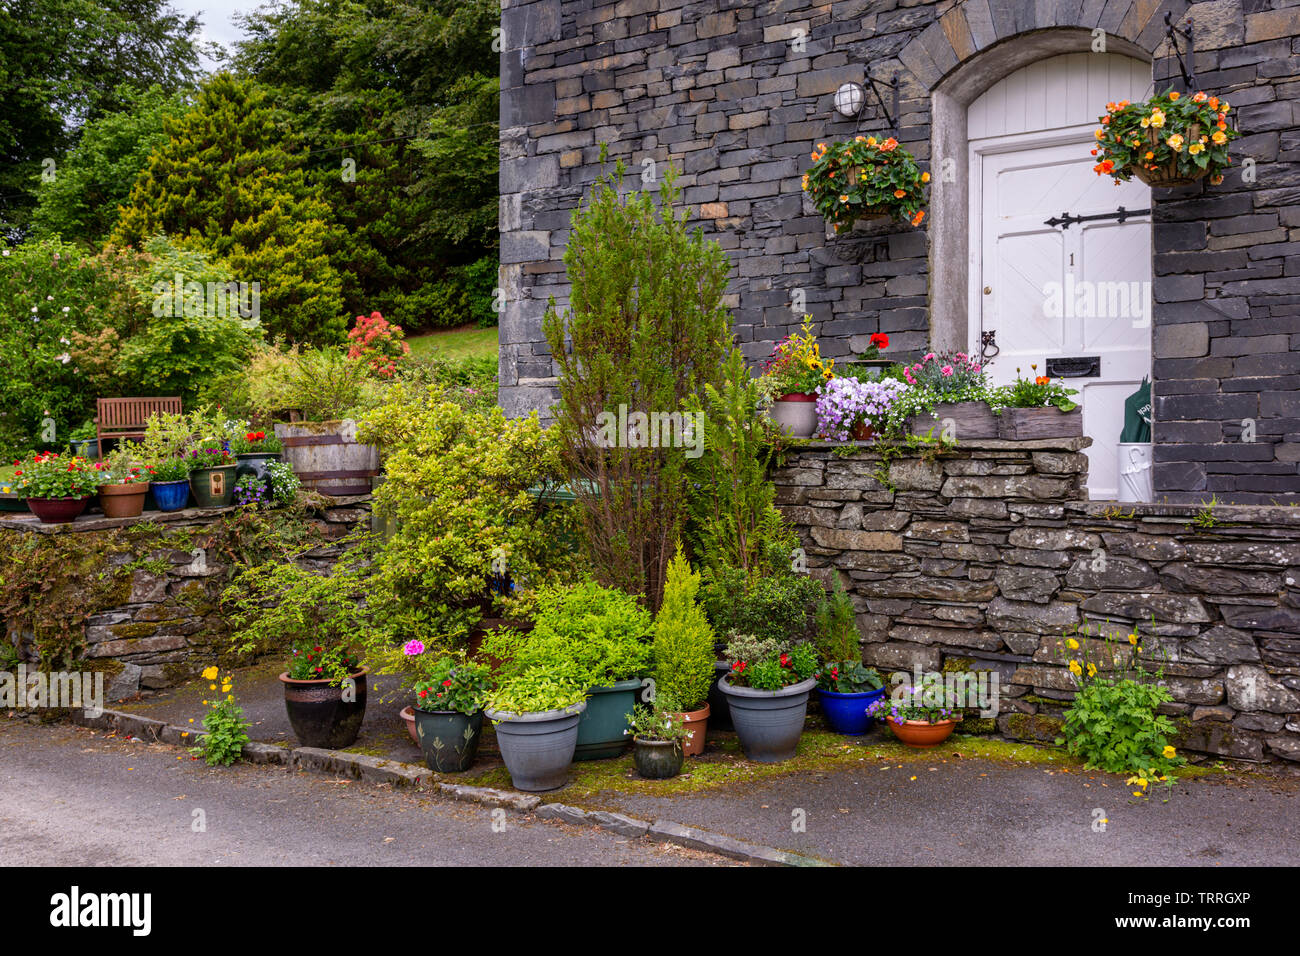 Plants in pots outside in a cottage garden, UK - Stock Image